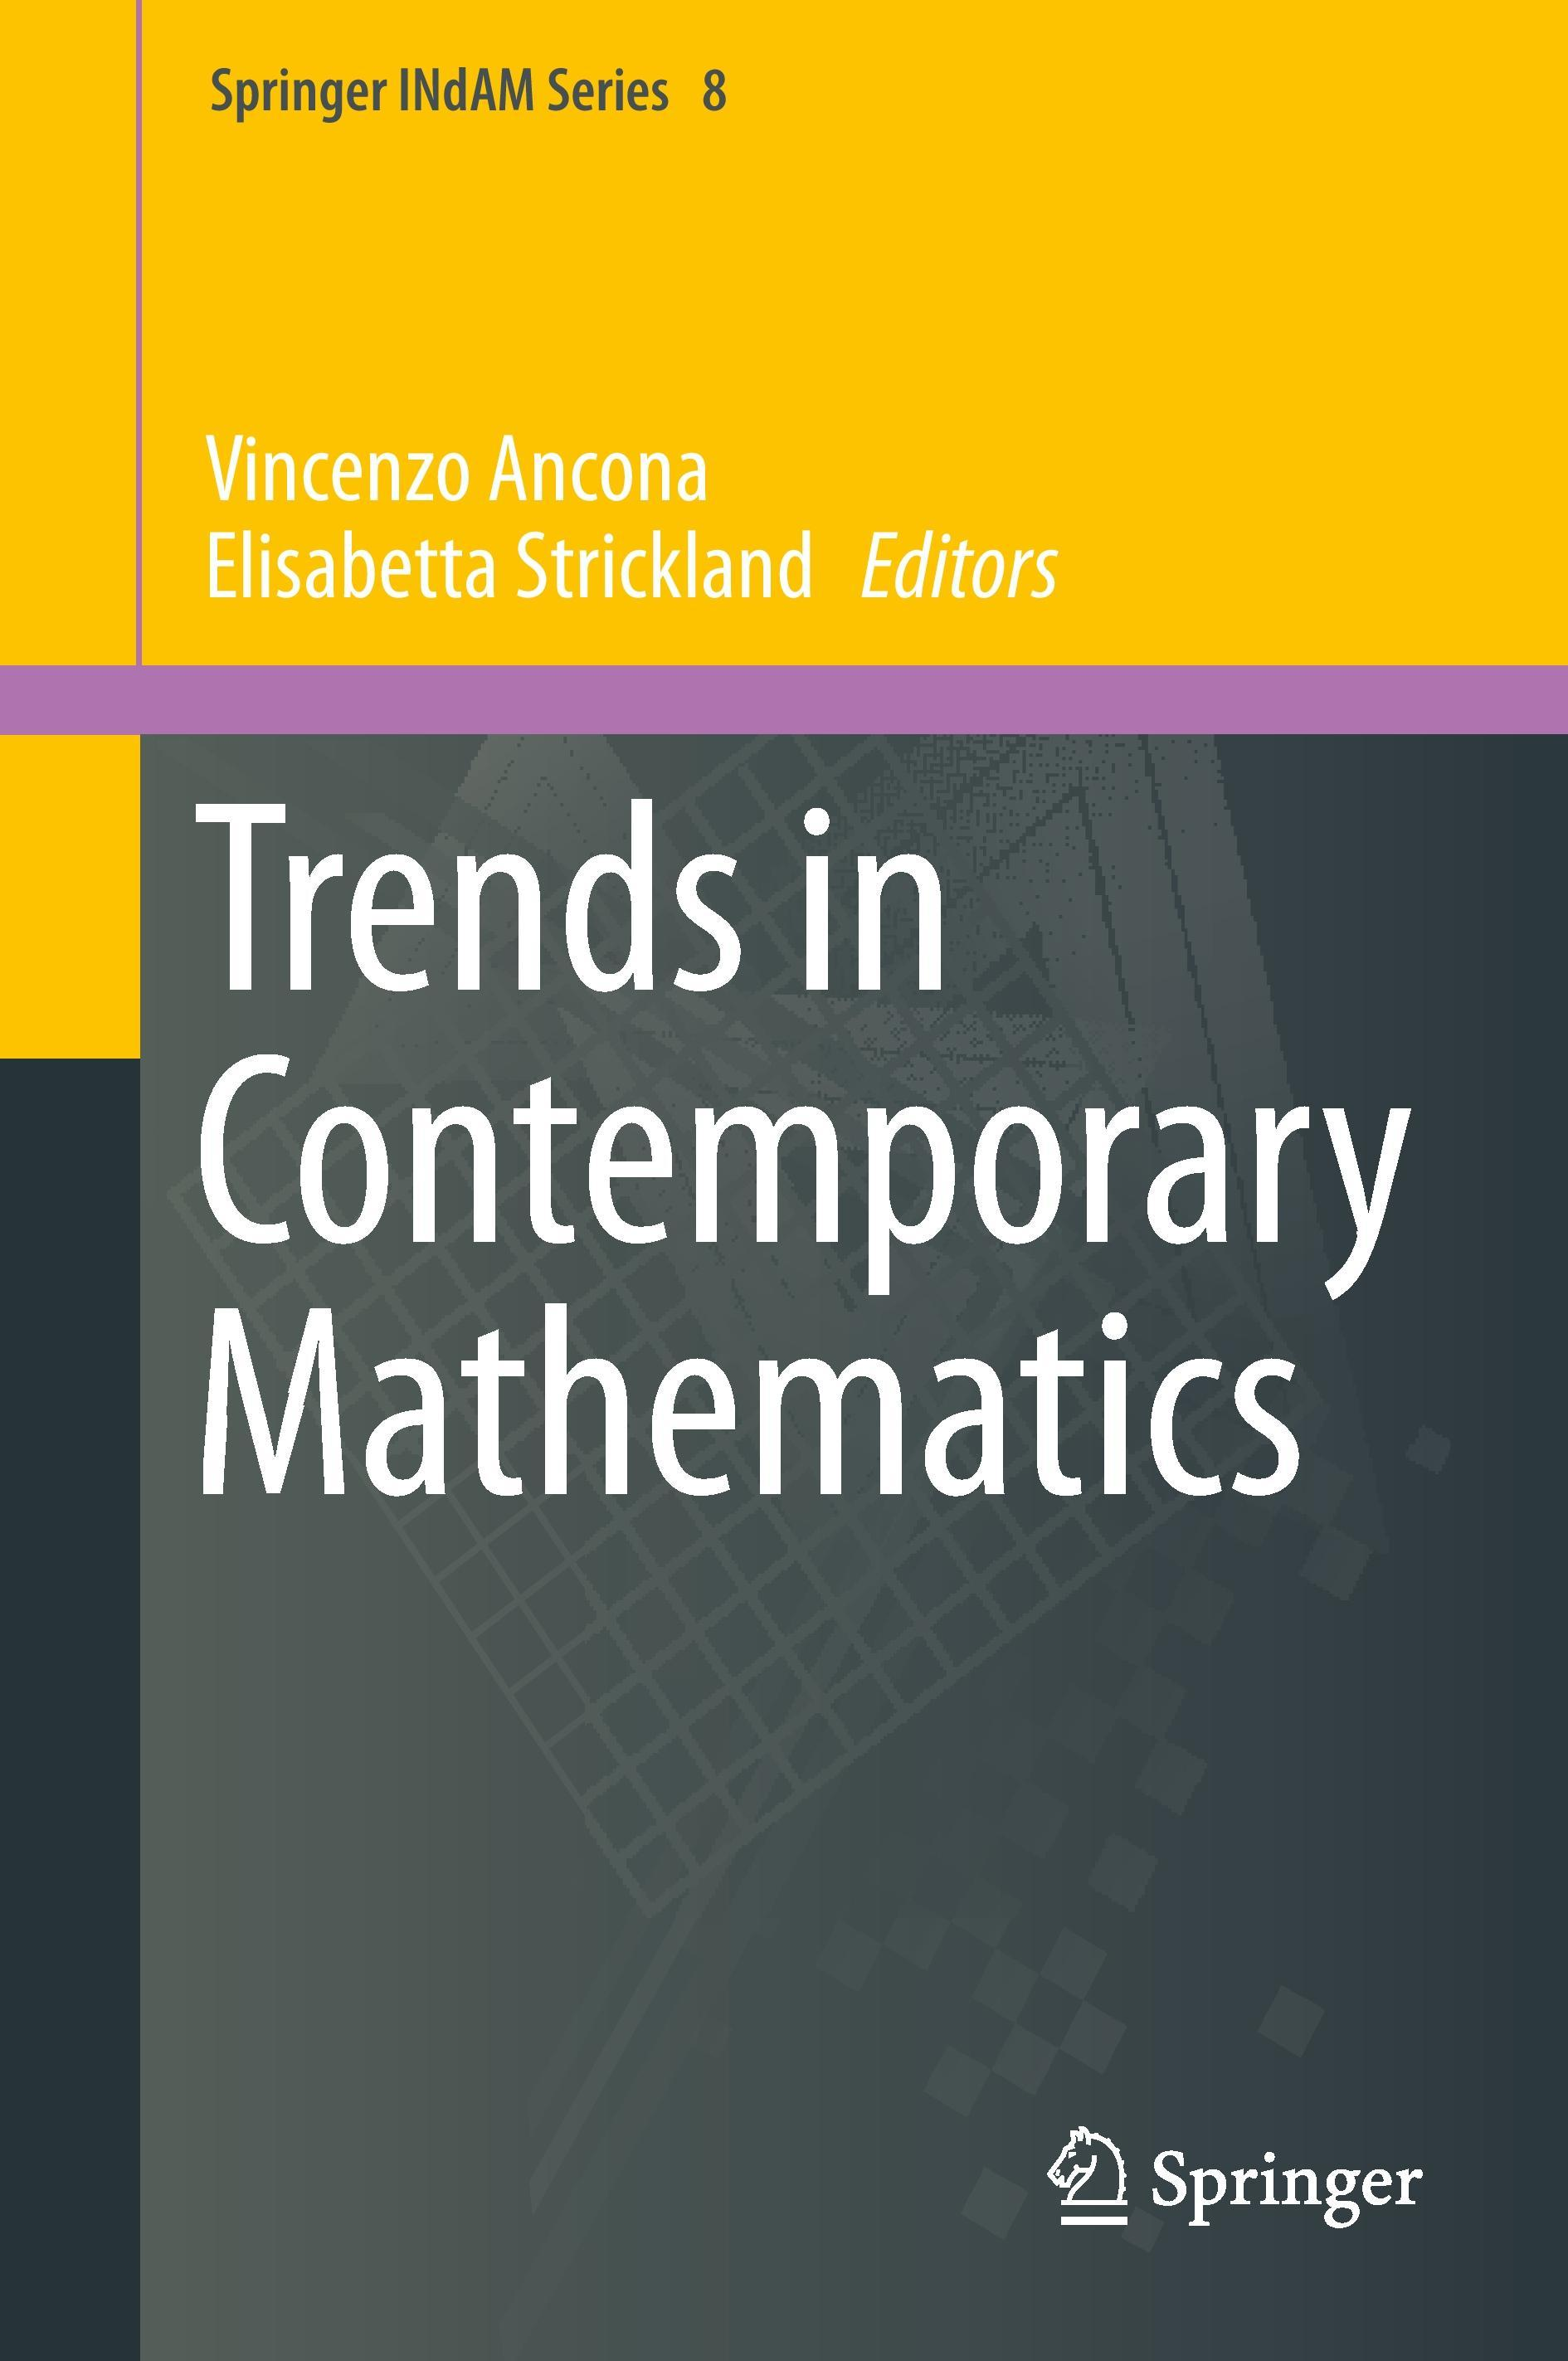 Trends in Contemporary Mathematics Vincenzo Ancona Buch Springer INdAM Series